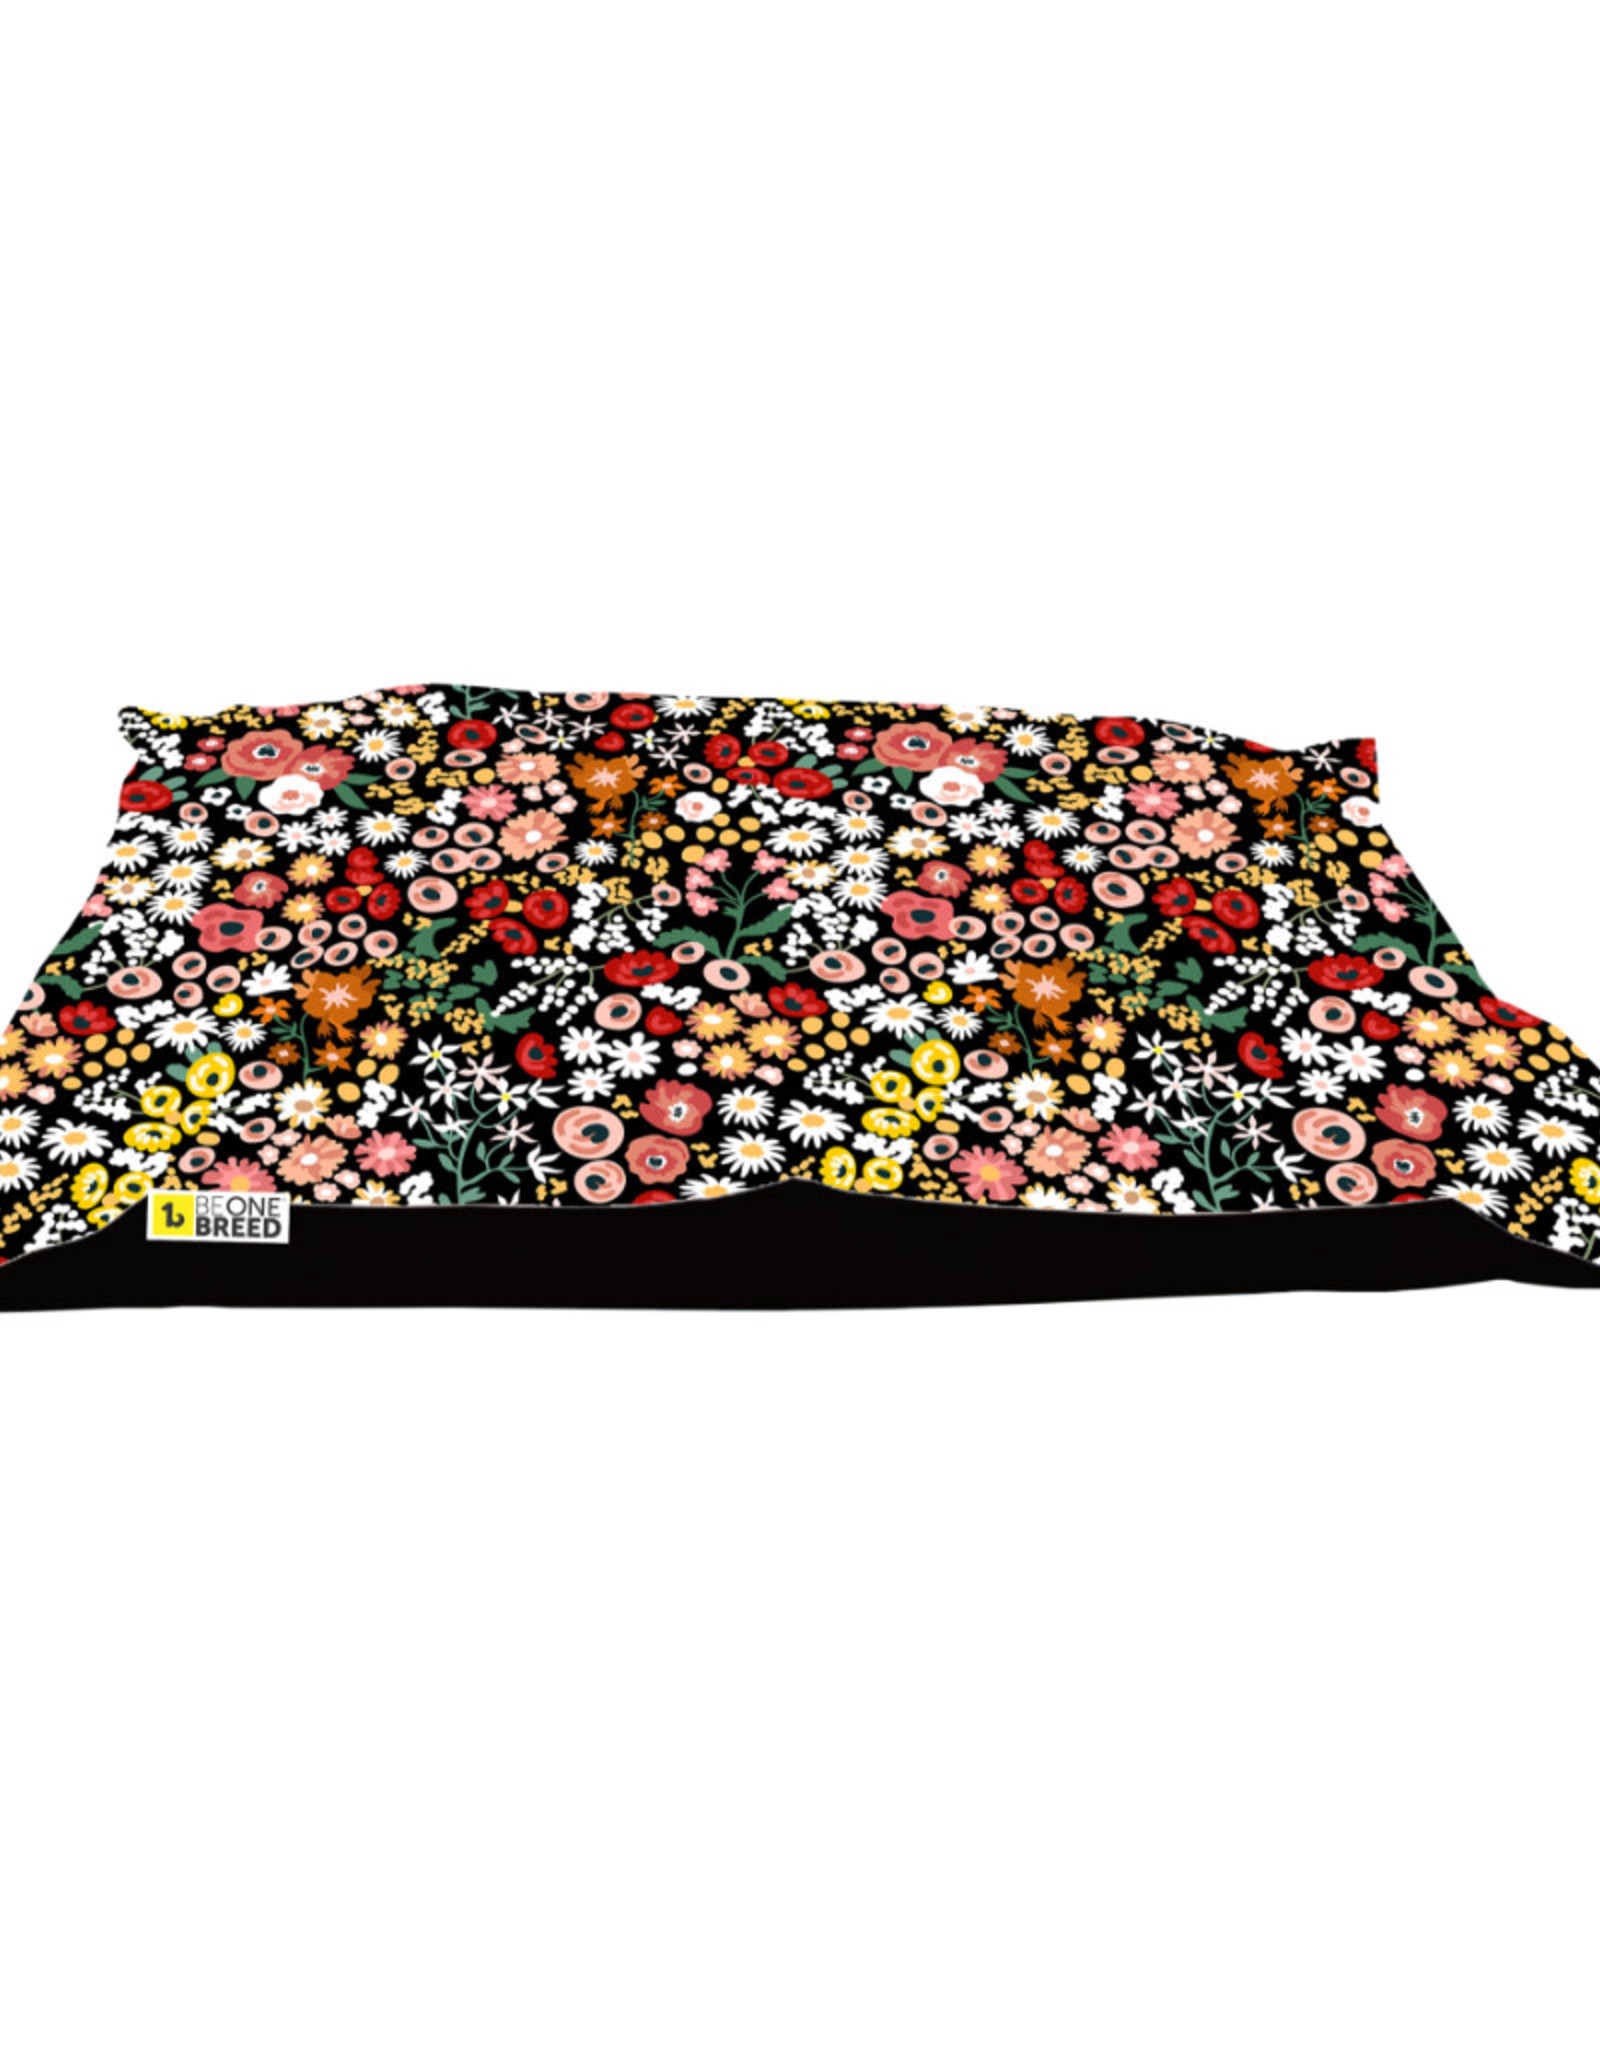 BE ONE BREED BE ONE BREED Cloud Pillow Wild Flowers Med 27